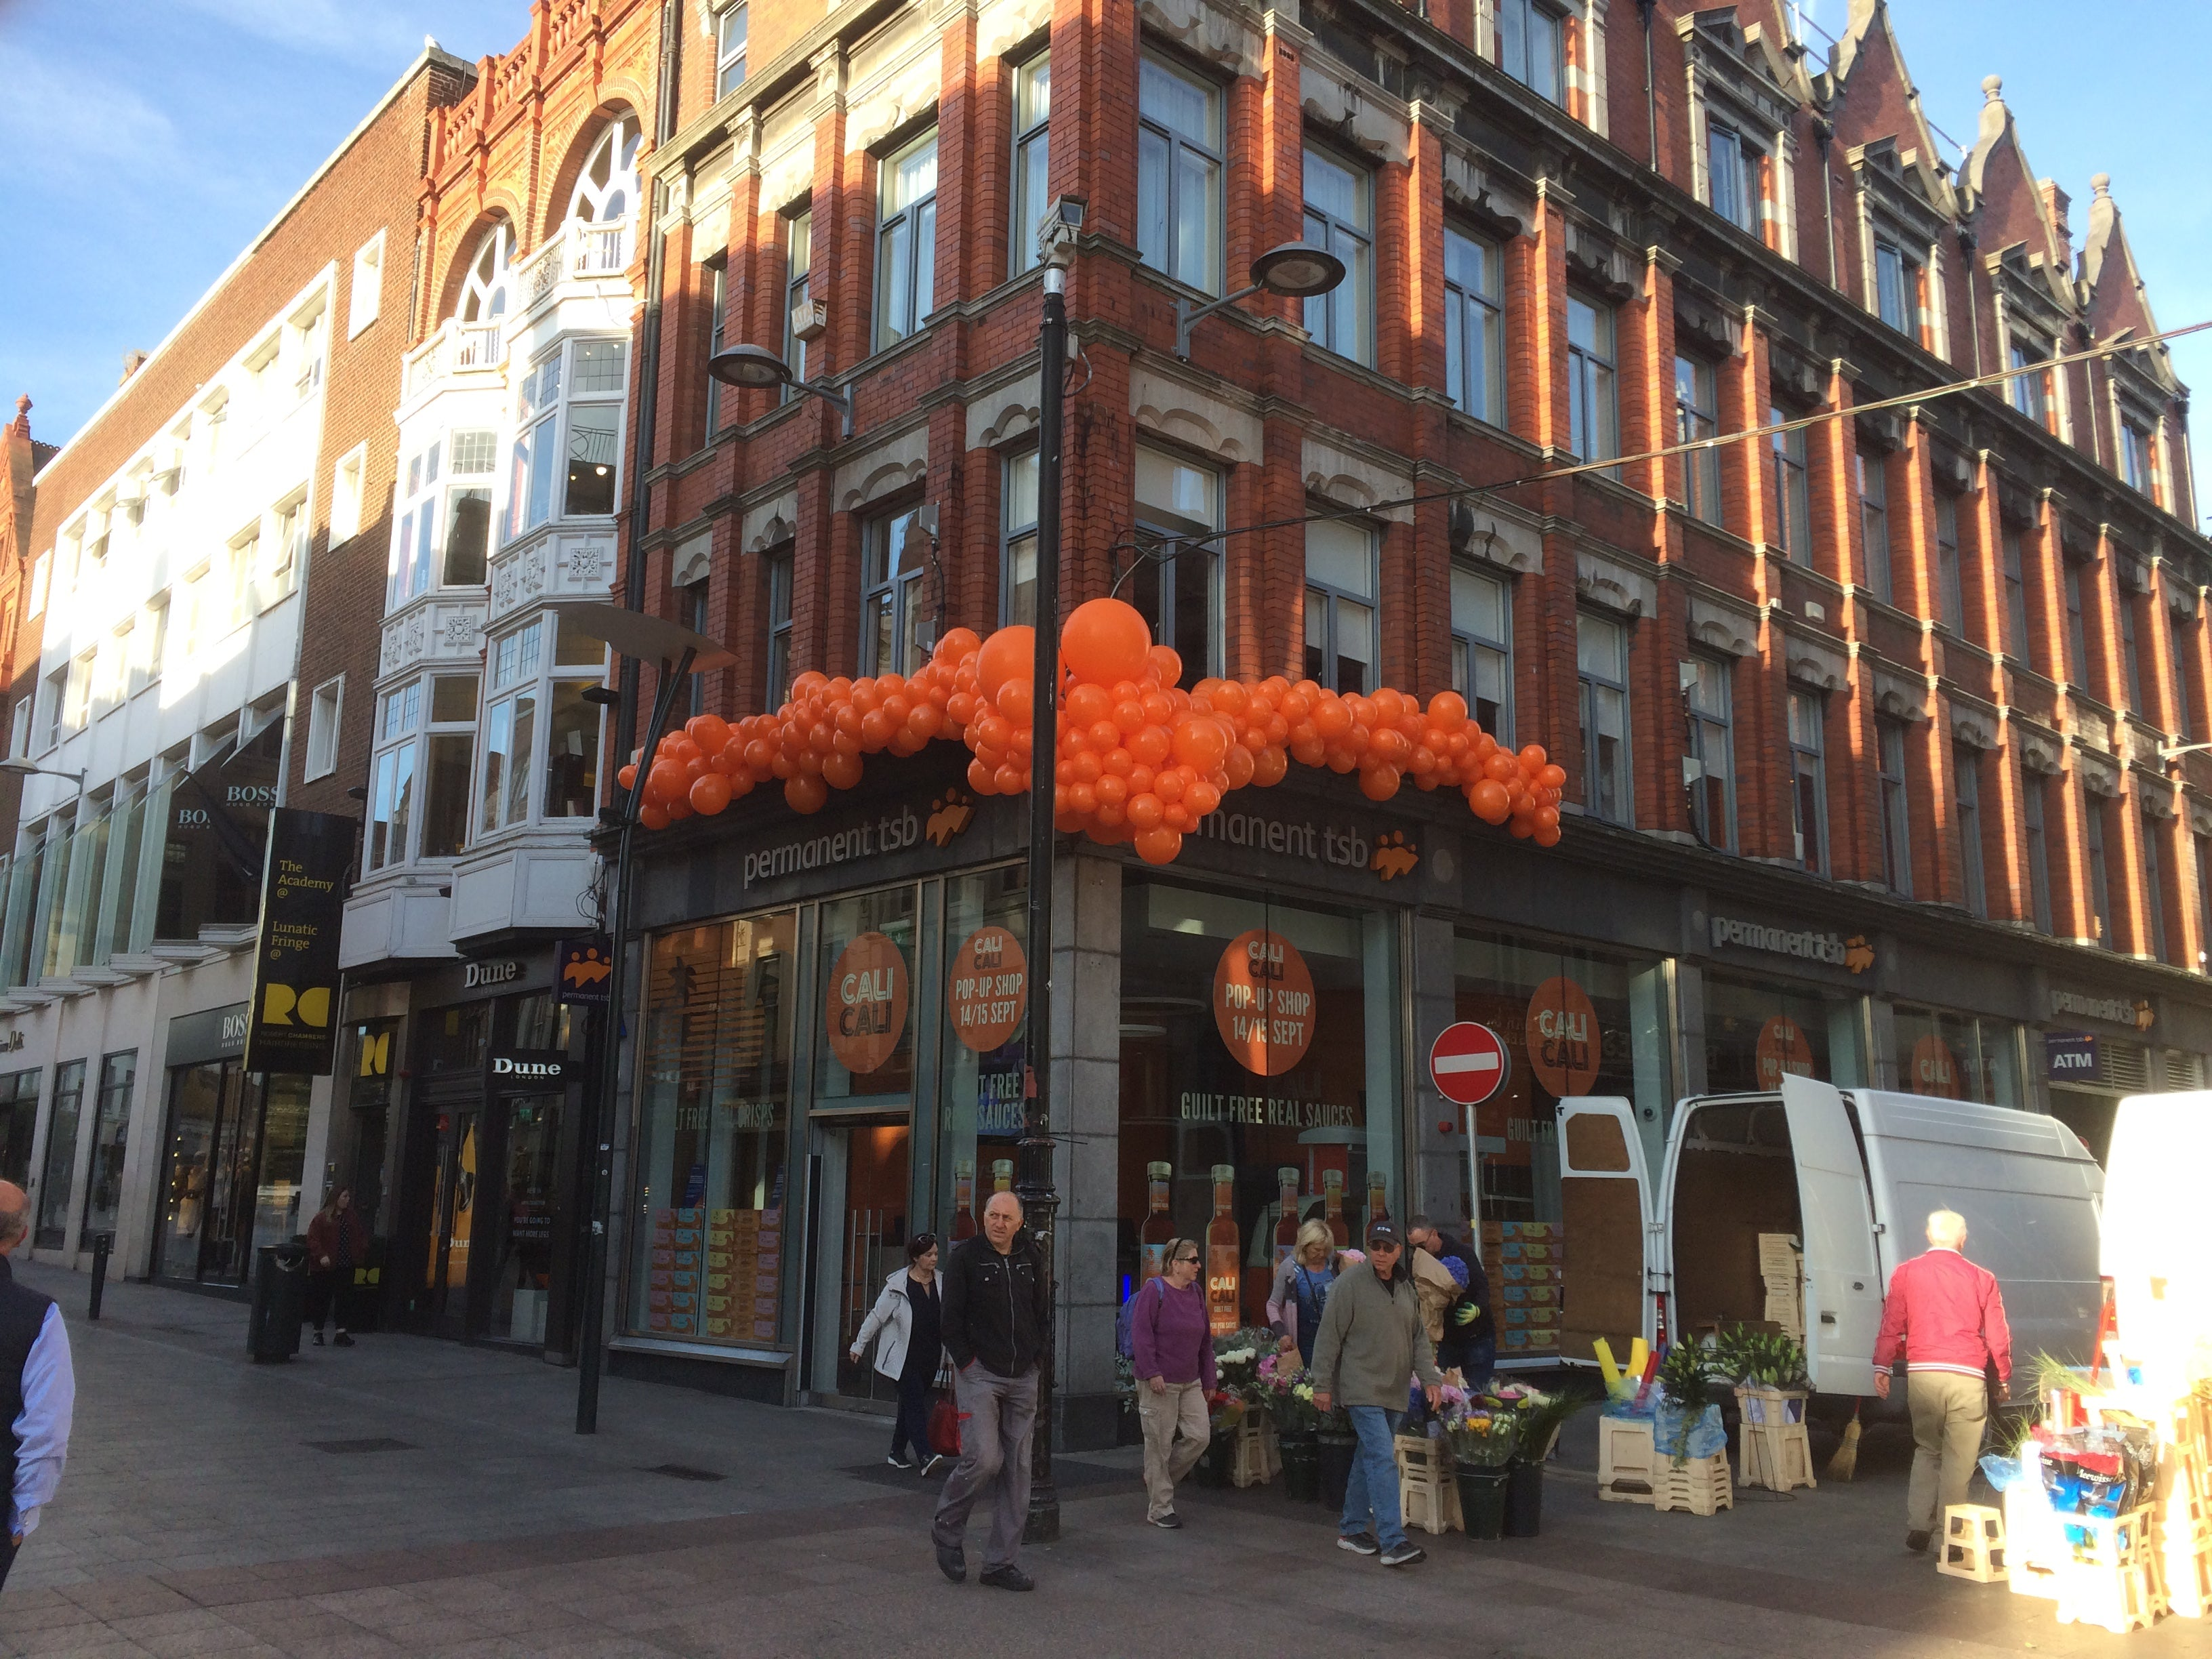 Large orange balloon display on side of building.